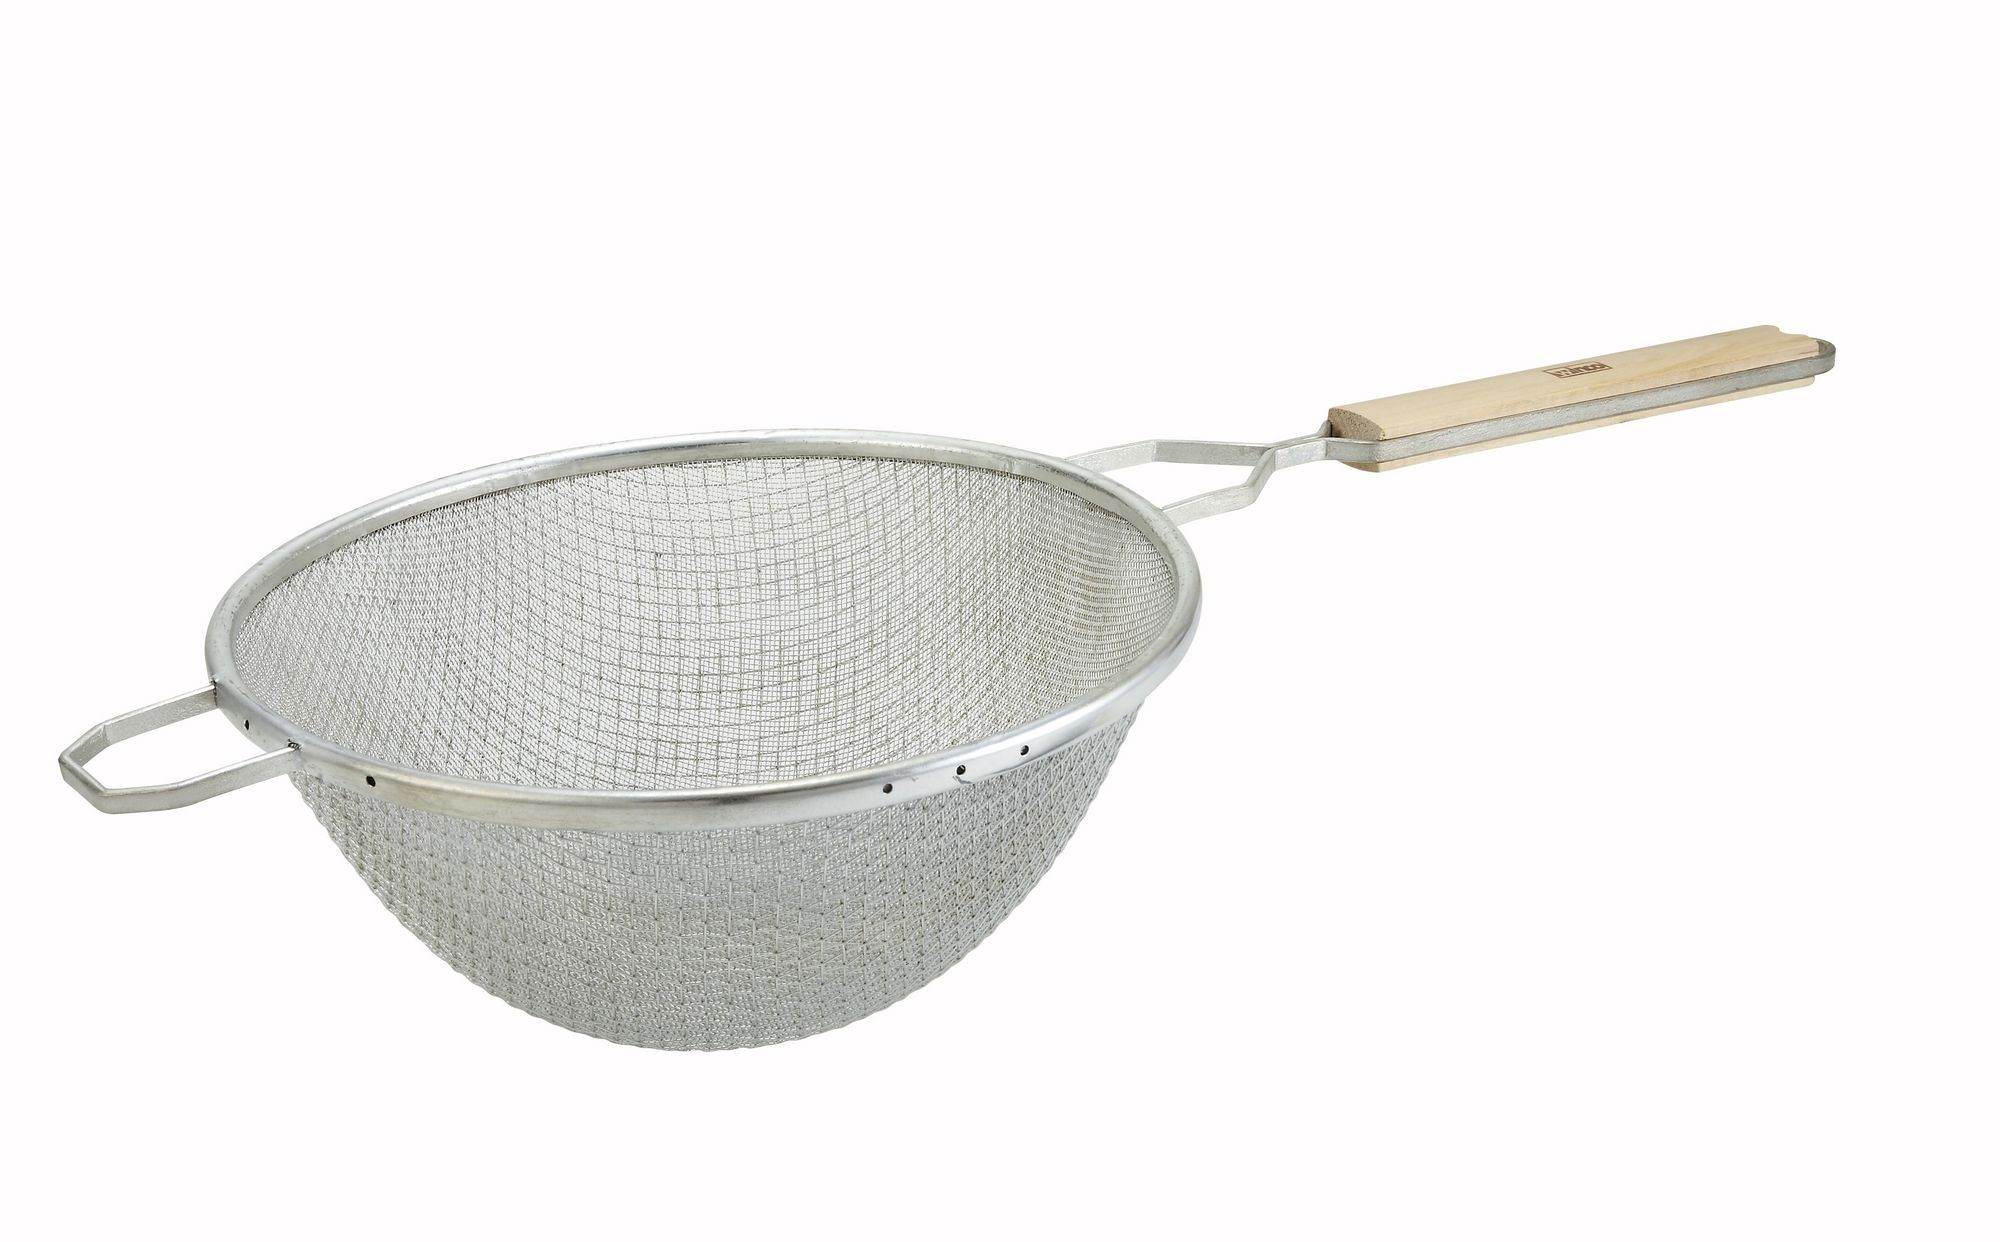 Double Tinned Mesh Fine Strainer With Wood Handle - 10-1/4